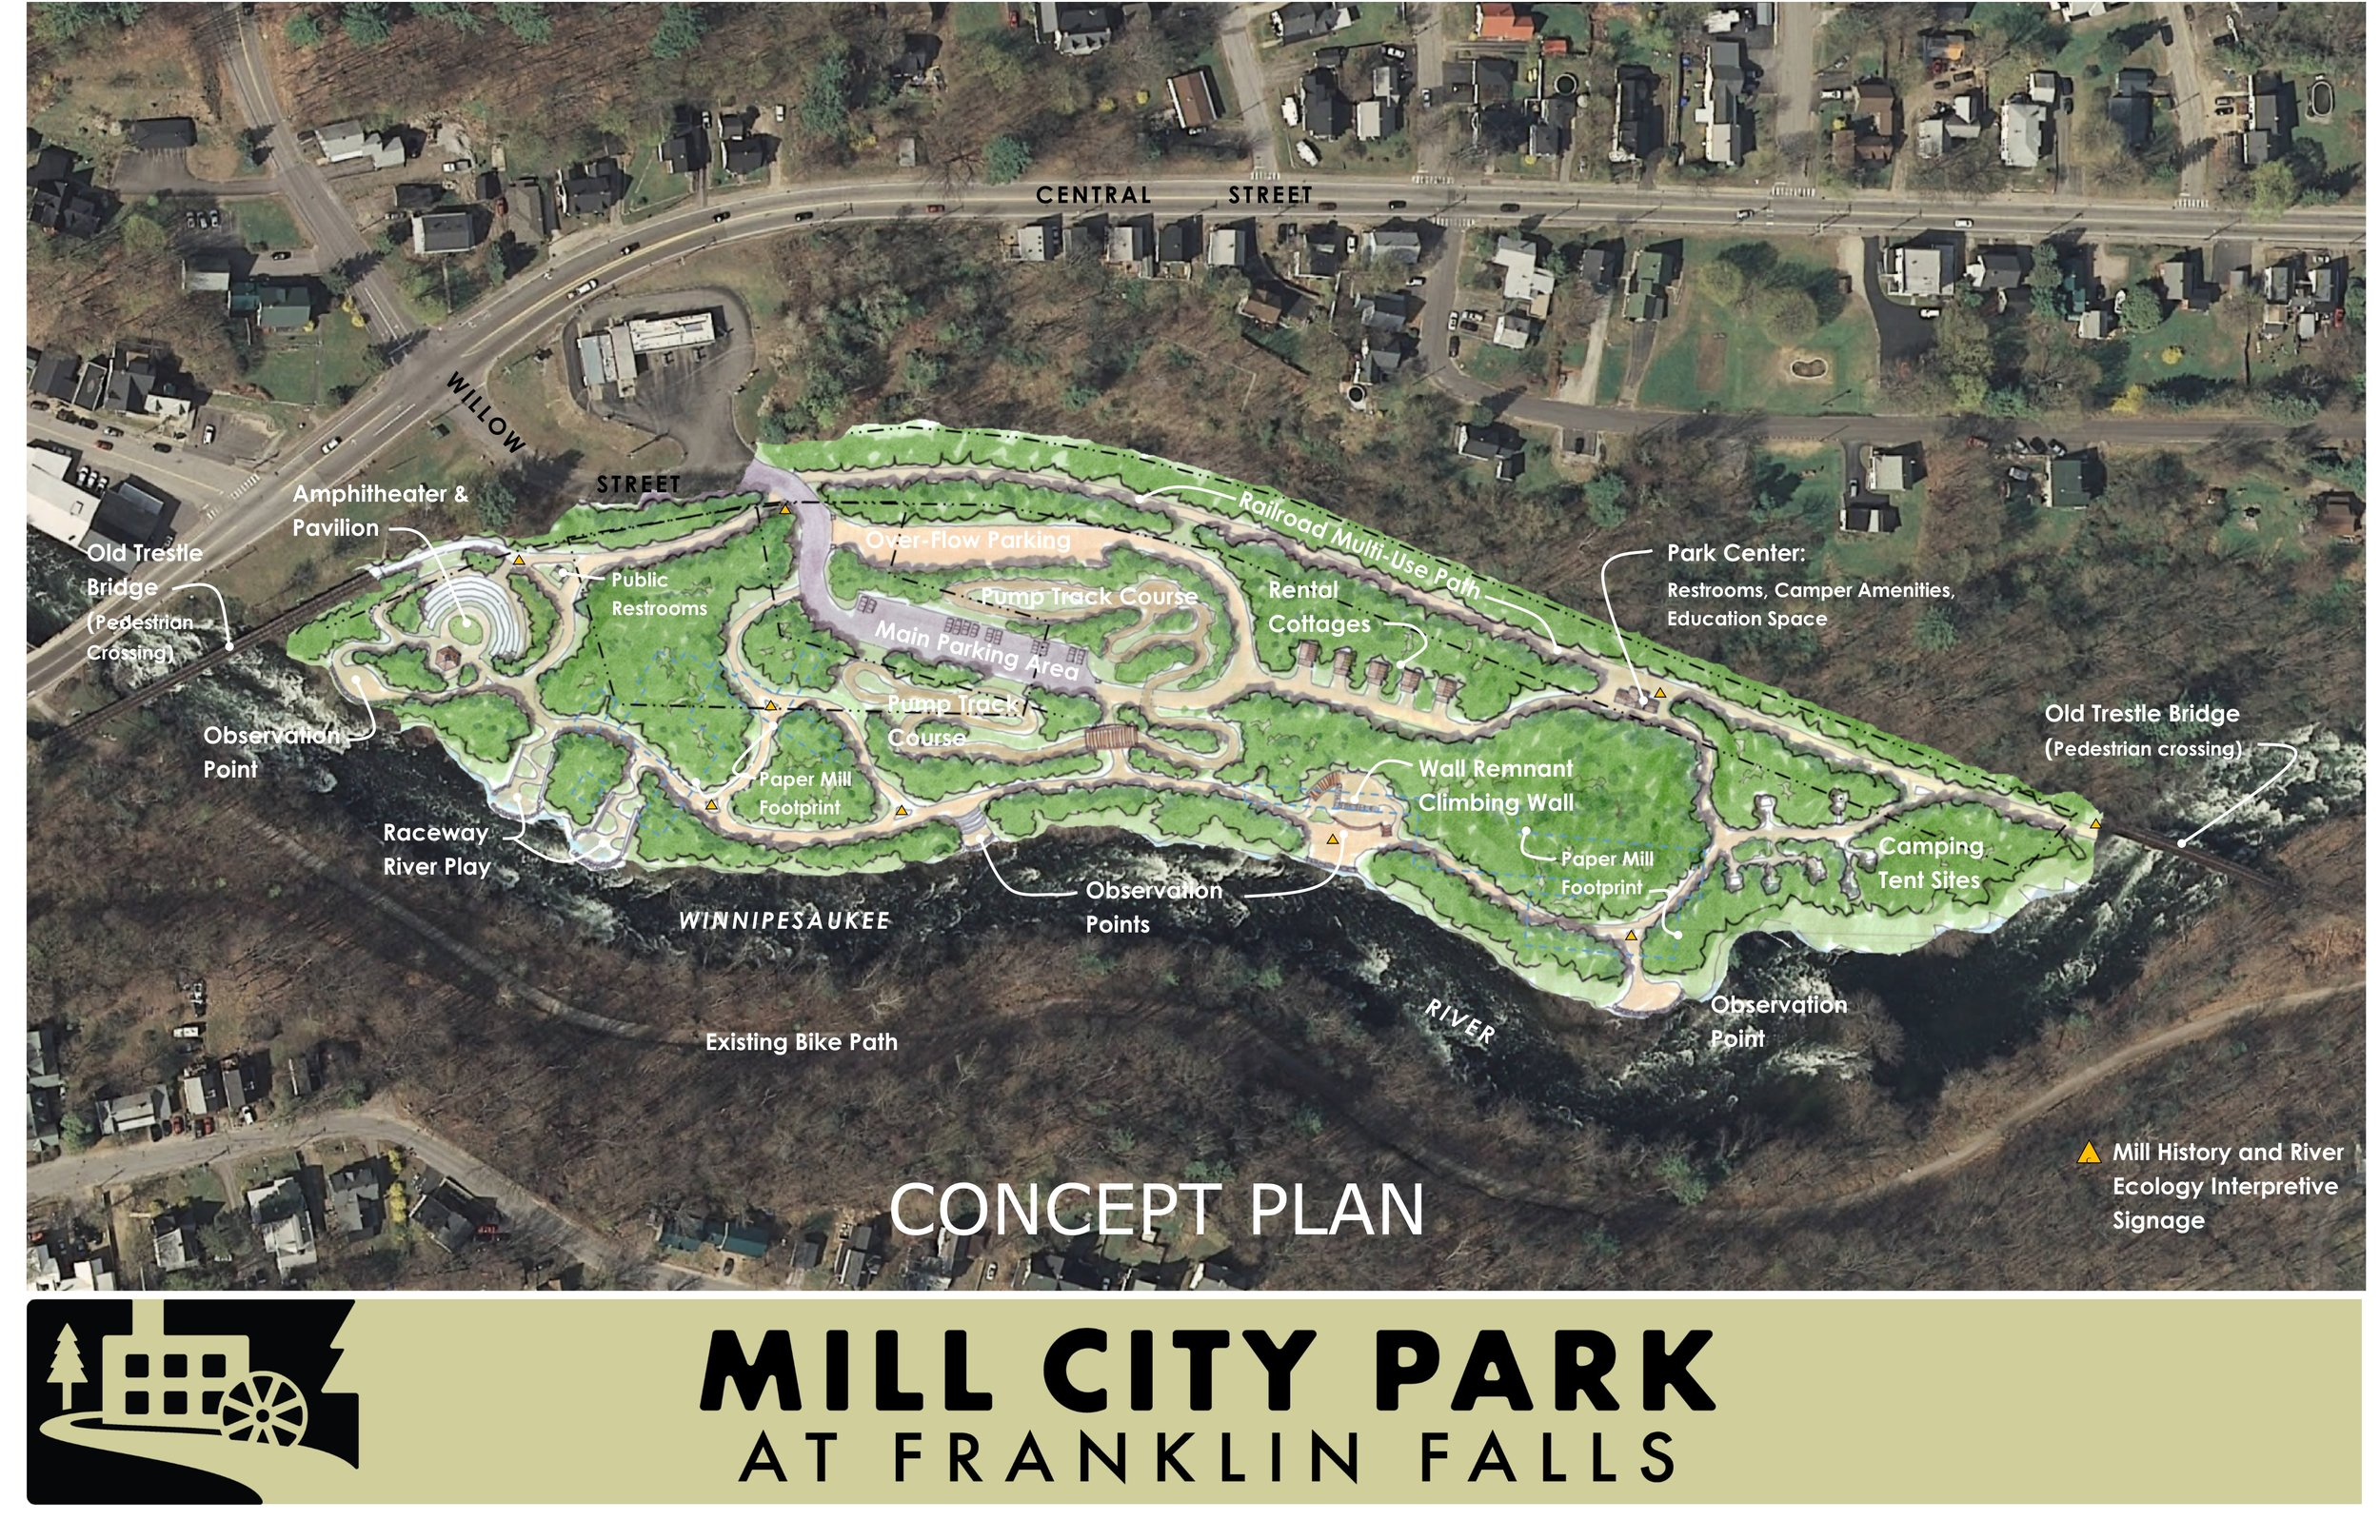 Draft Concept Plan Master Plan Design was produced with positive collaborations between Resilience, Planning & Design and Mill City Park.